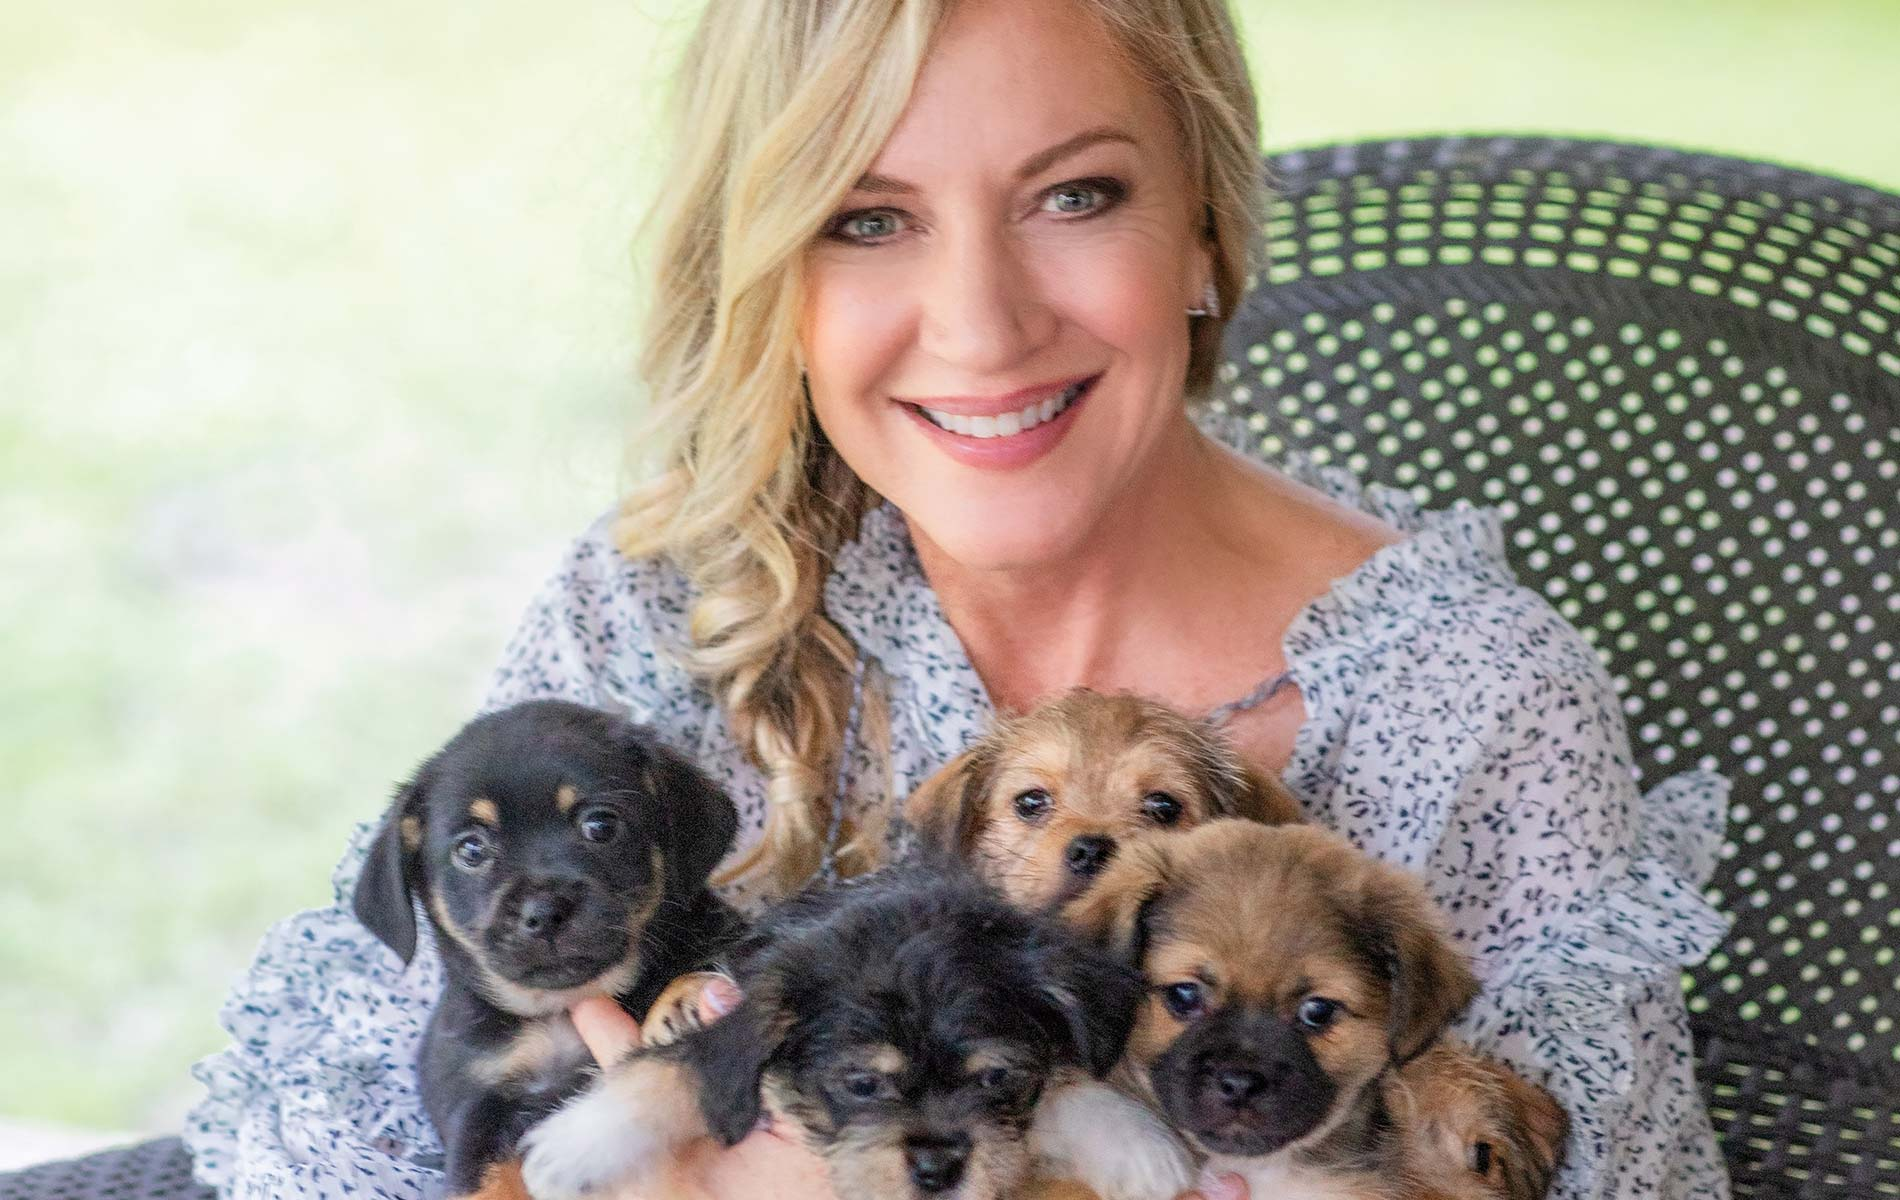 Laurie Hood with a new littler of puppies